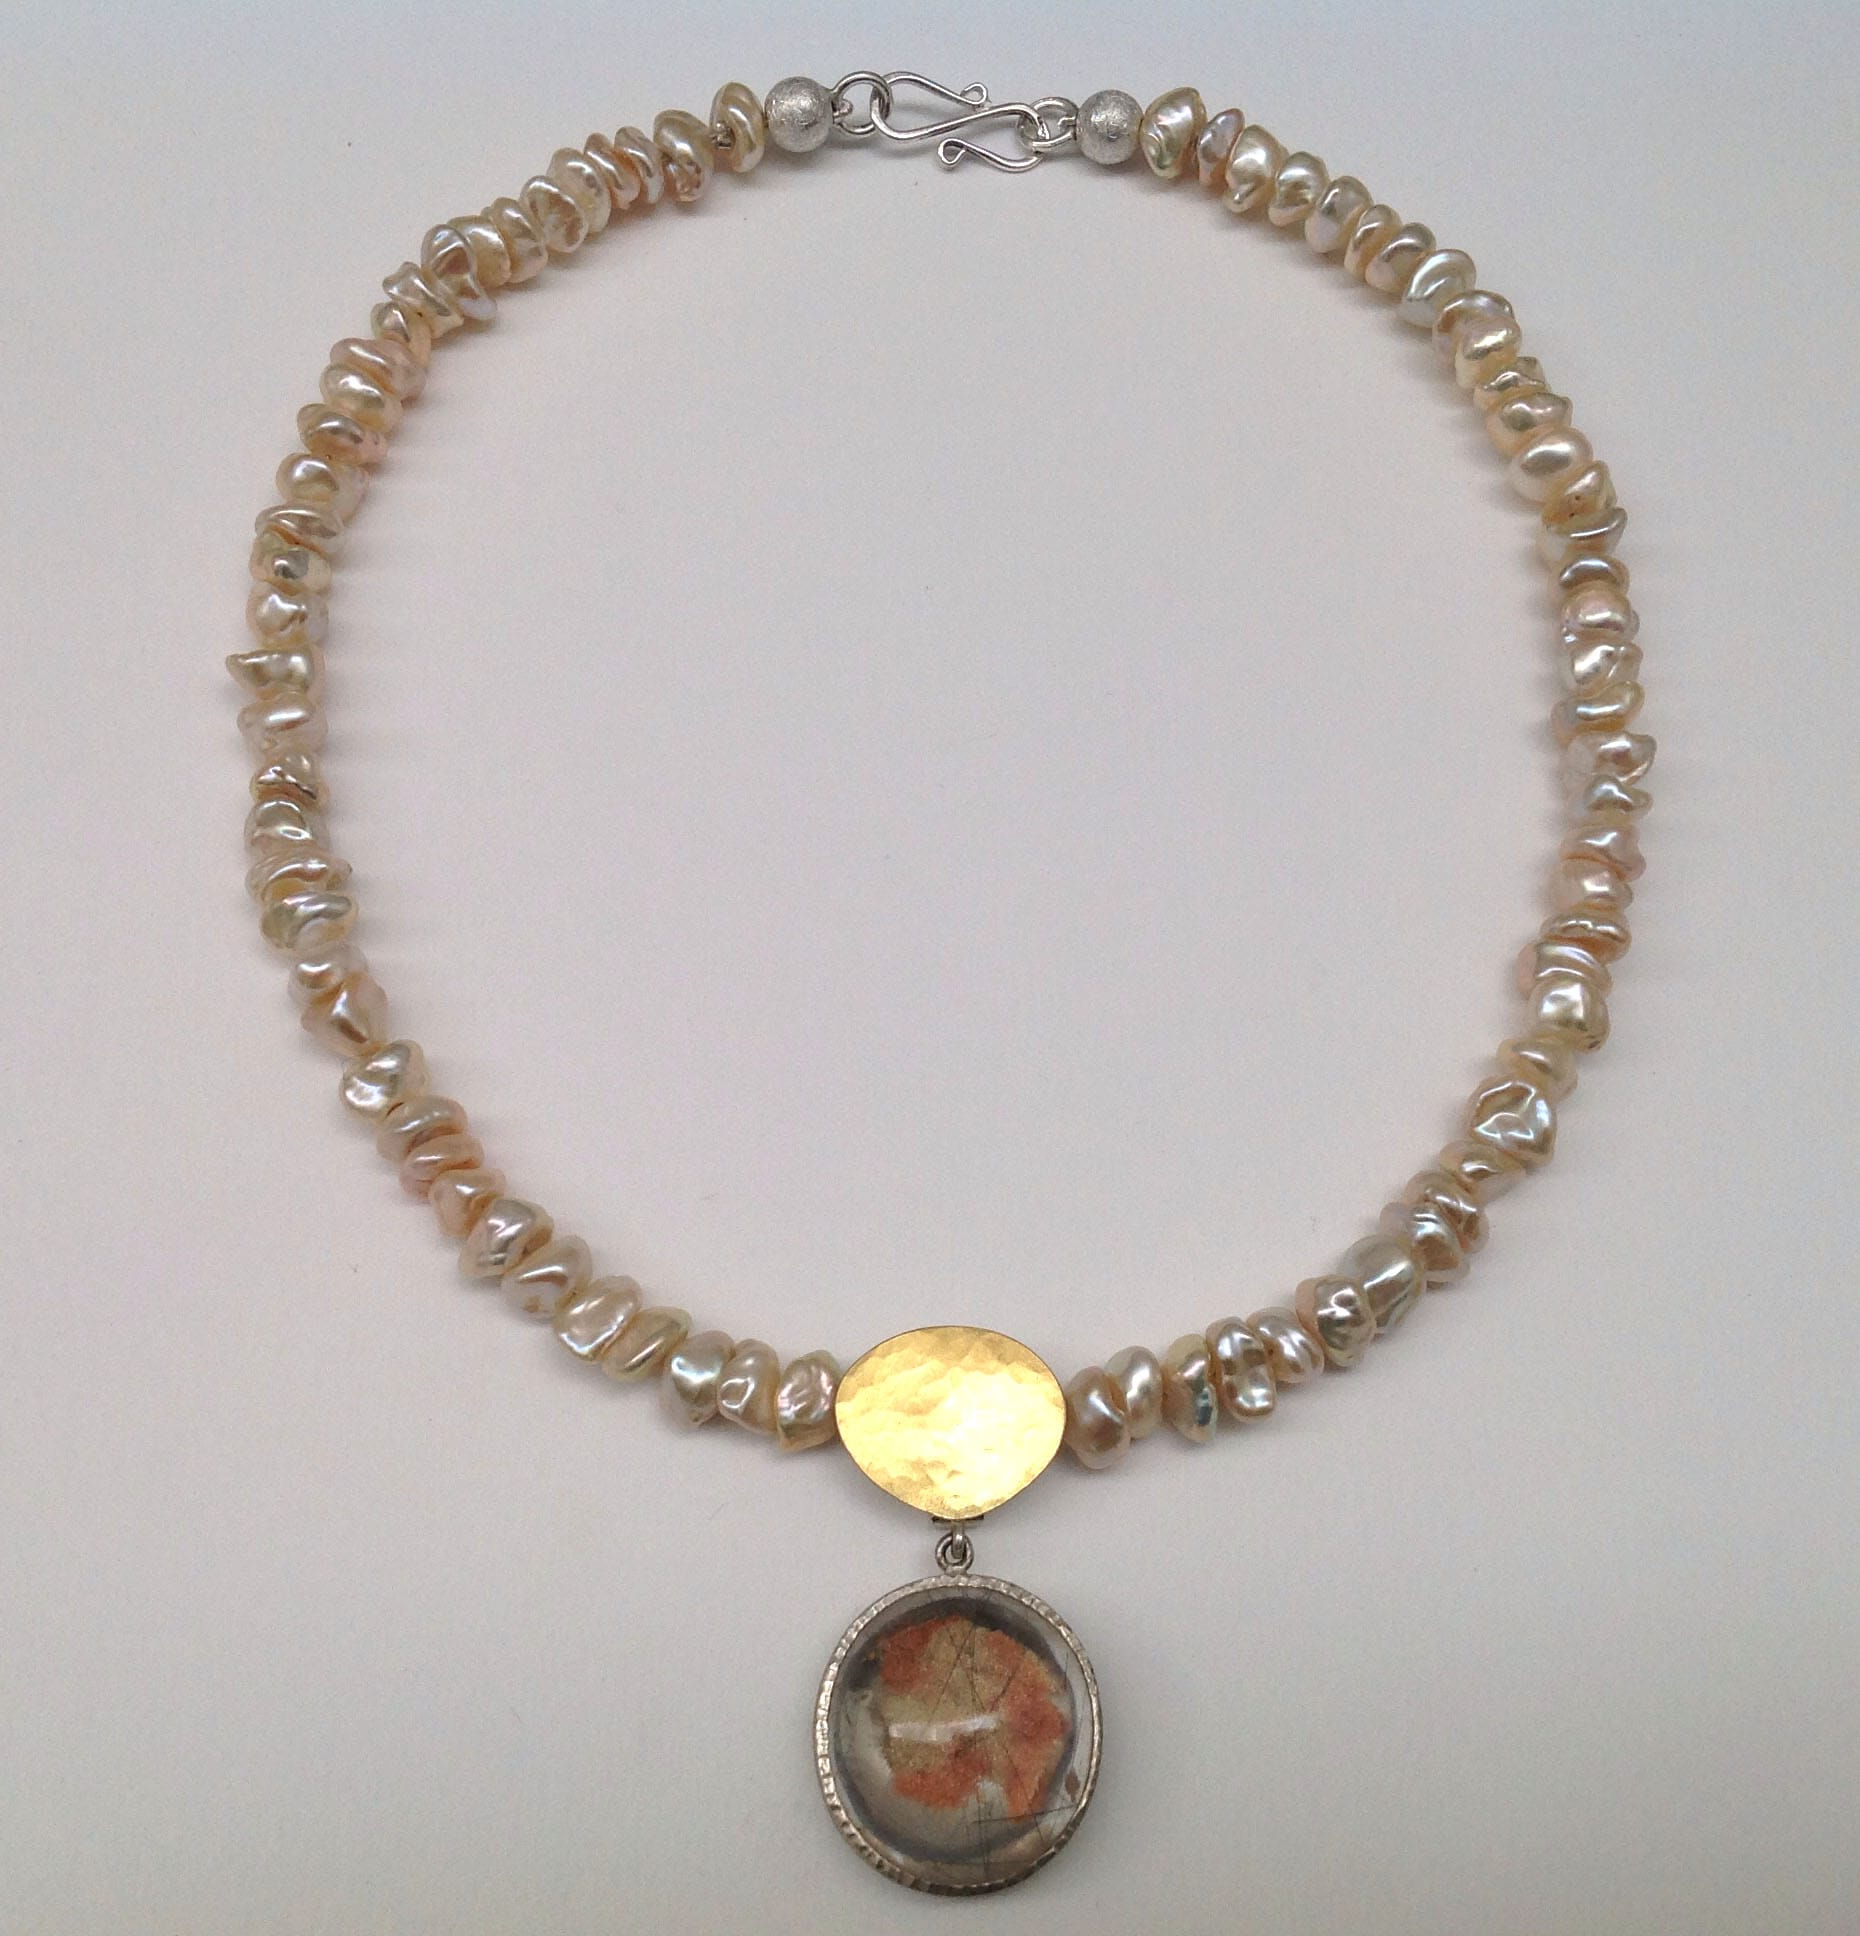 Natural colour freshwater baroque pearls, quartz pendant set in sterling silver with 22 carat gold detail